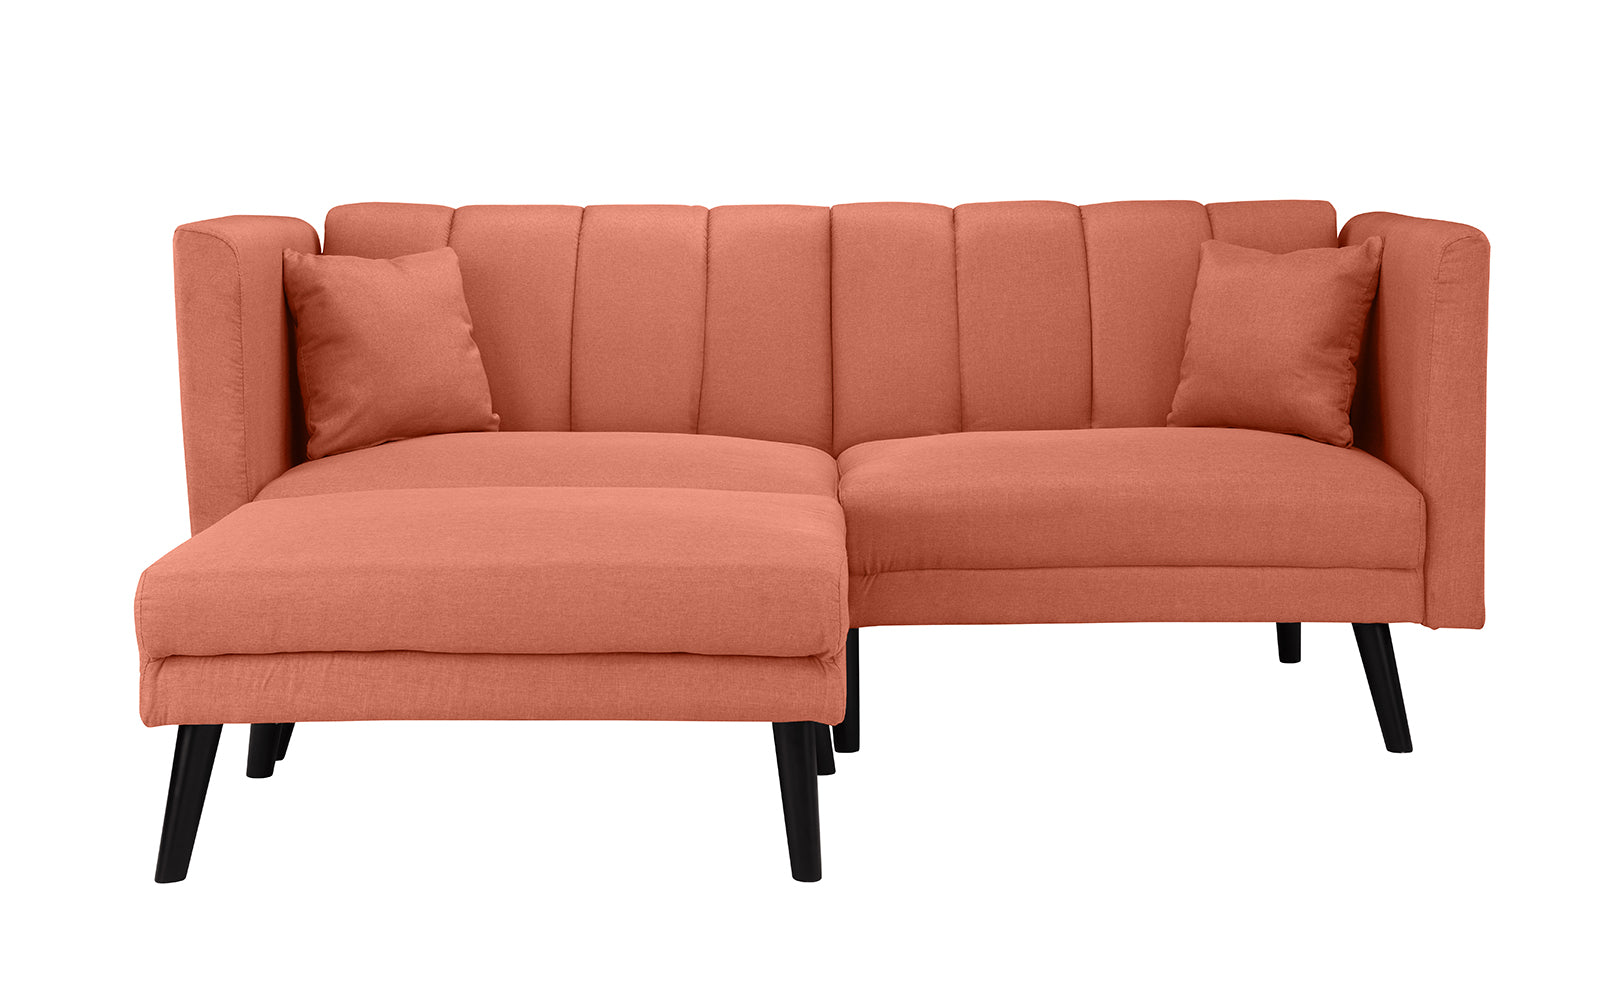 Miraculous Buy Affordable Futons Online 20 Modern Styles For Sale Alphanode Cool Chair Designs And Ideas Alphanodeonline